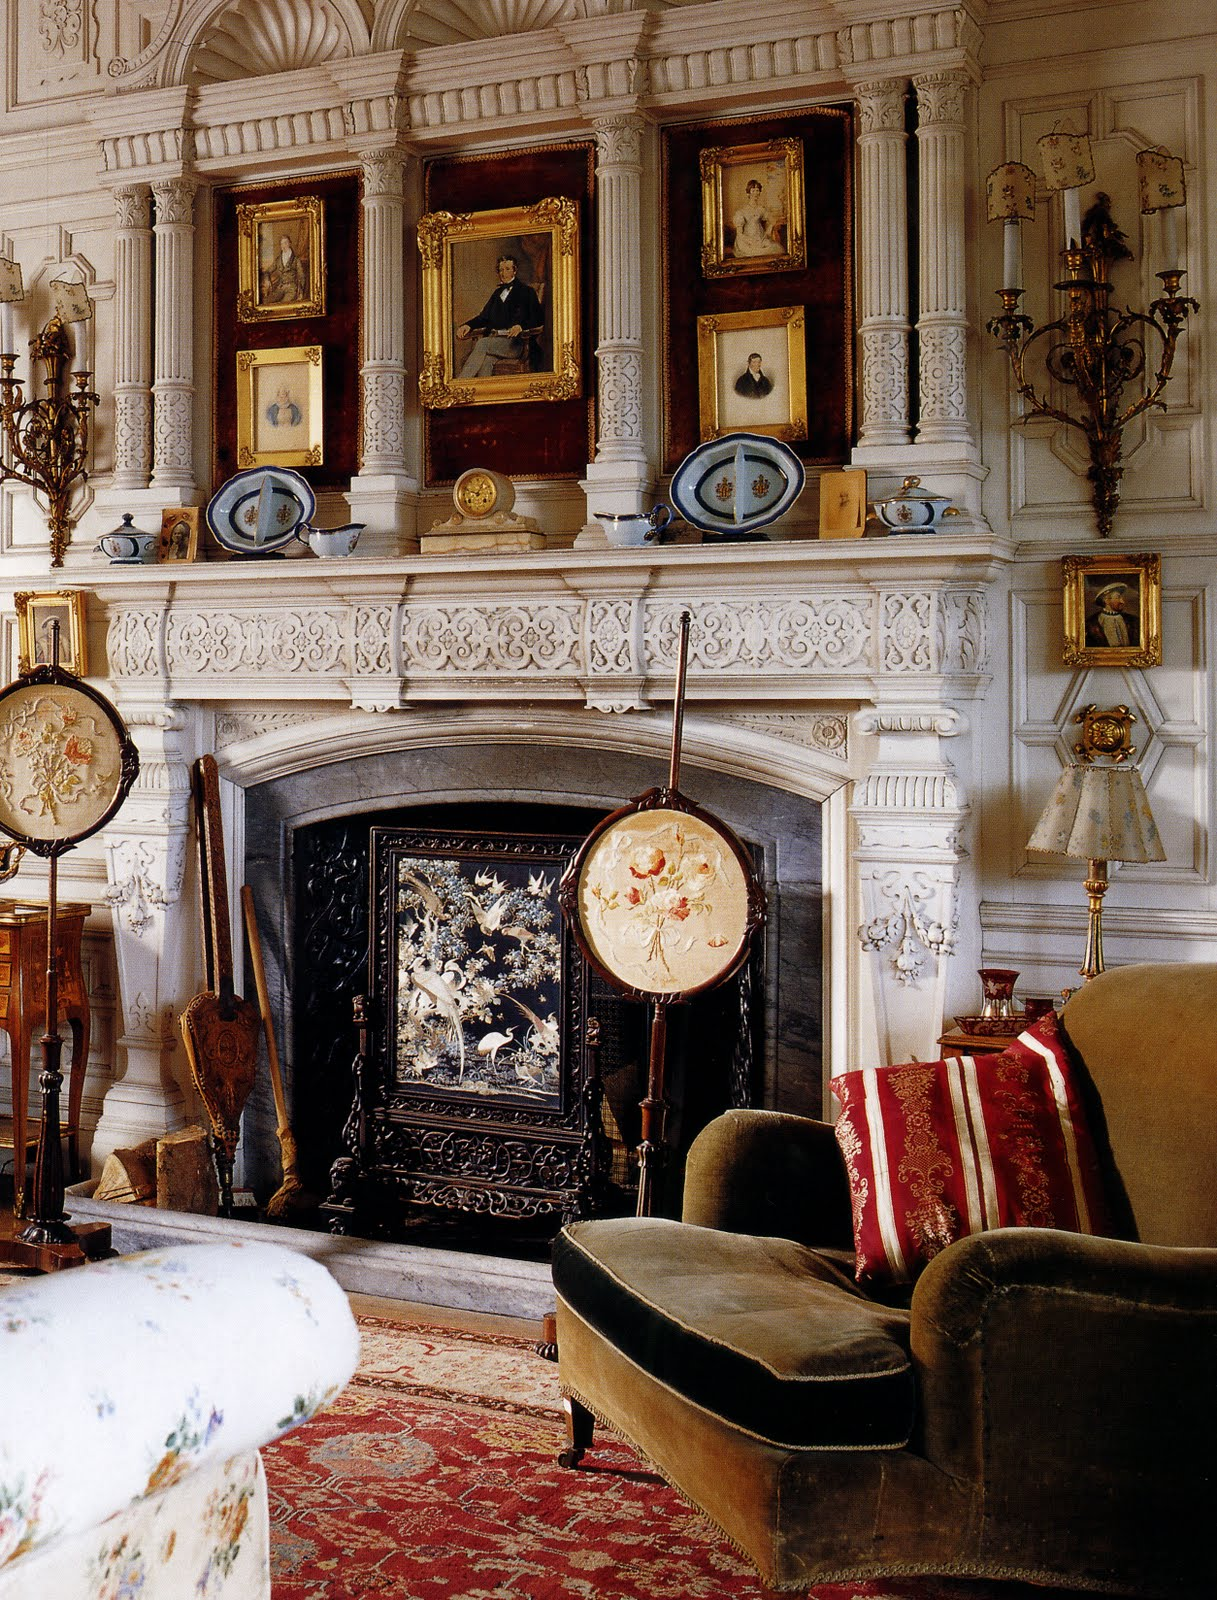 Cityzenart english country homes 1830 1900 - Country homes and interiors pinterest ...